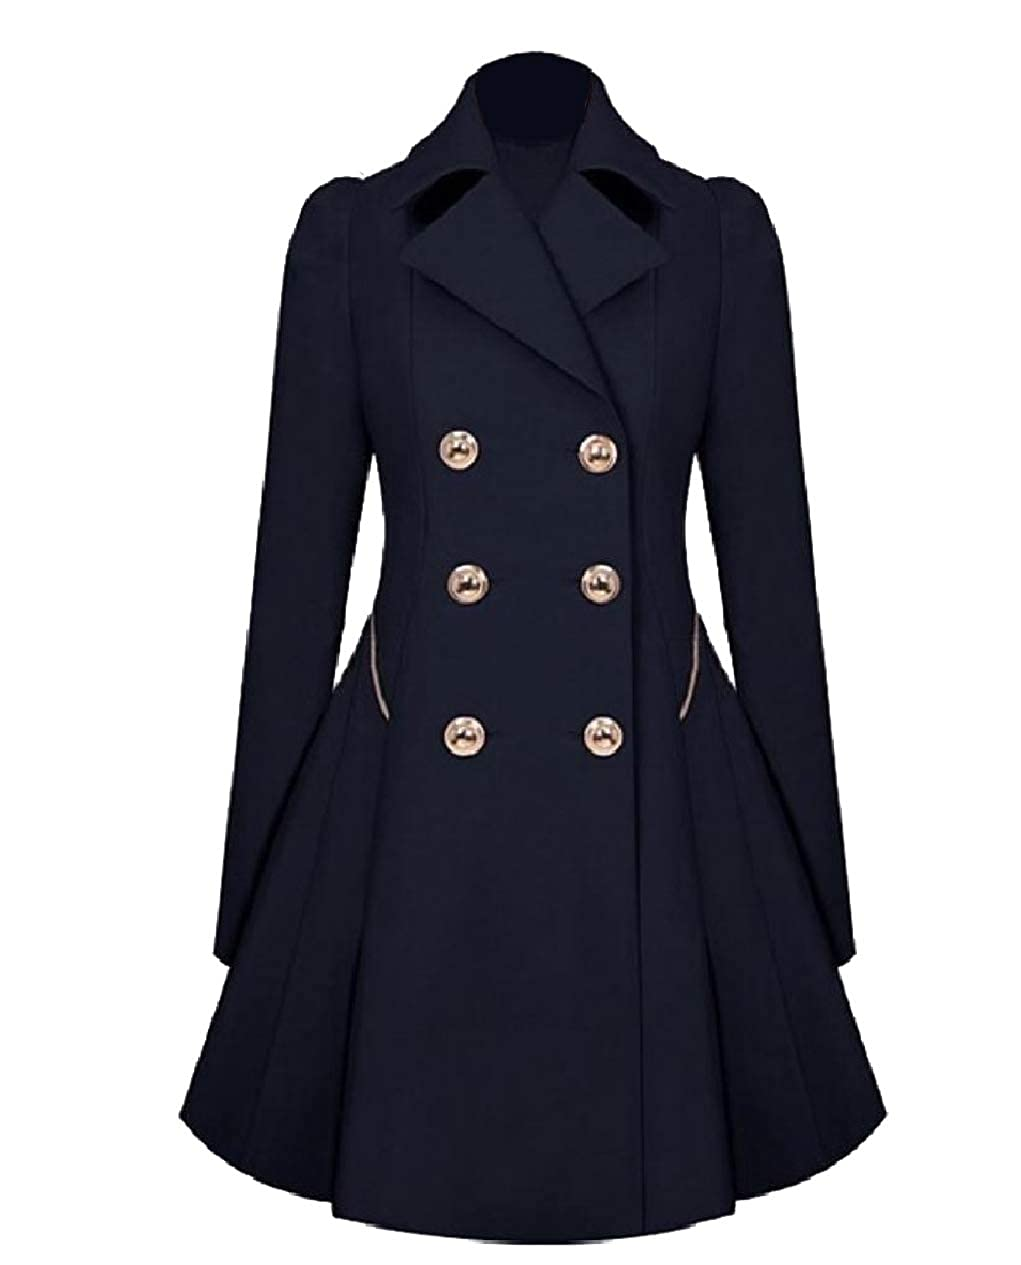 Tryist Womens Duster Jacket Classic British Style Tunic Outwear Trench